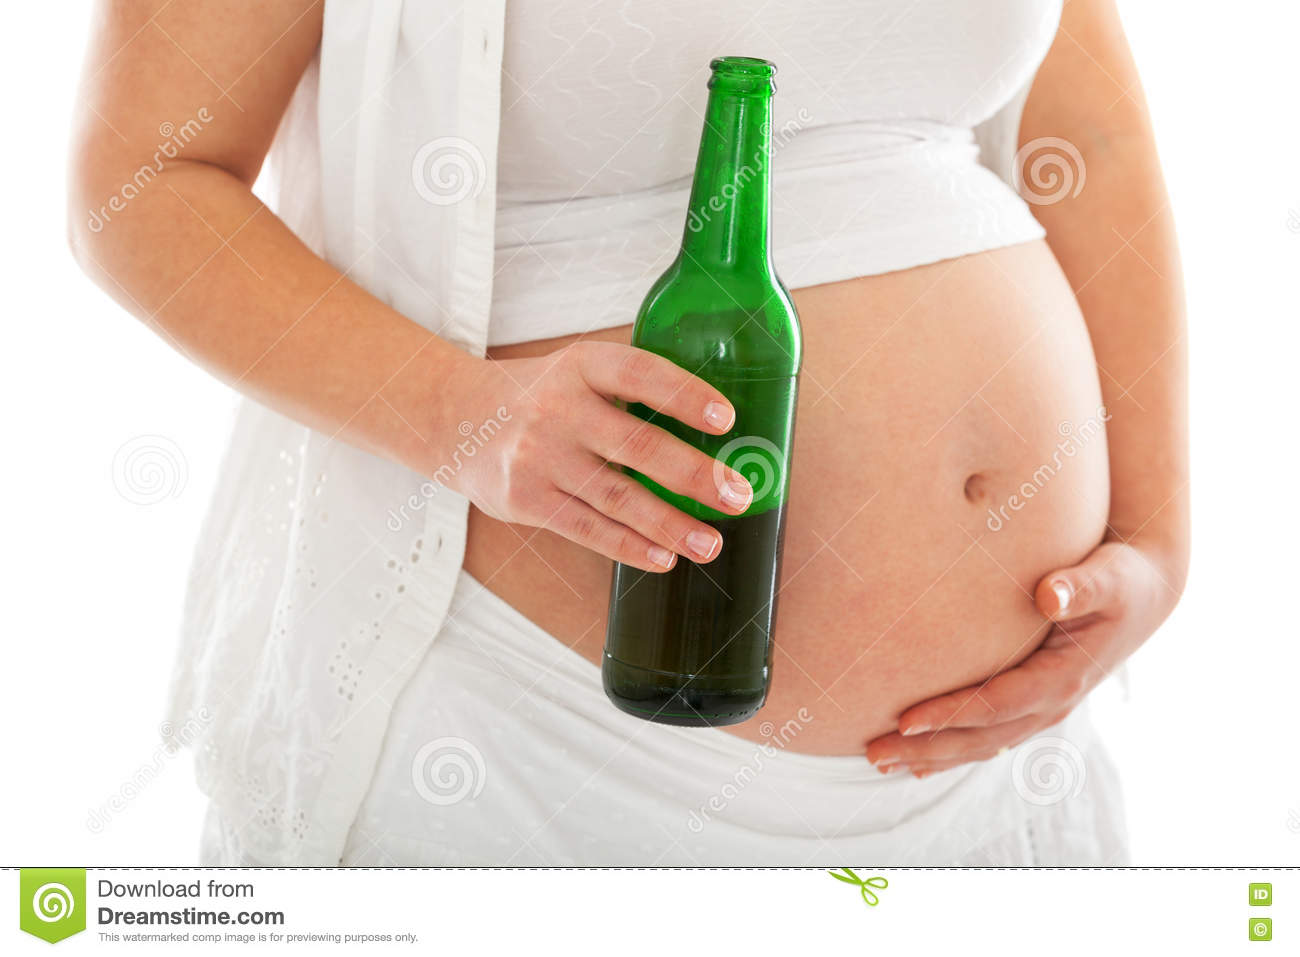 drinking while pregnant The norms around drinking while pregnant seem to change every couple of decades is it ok to have an occasional drink, or is it better to extra cautious.